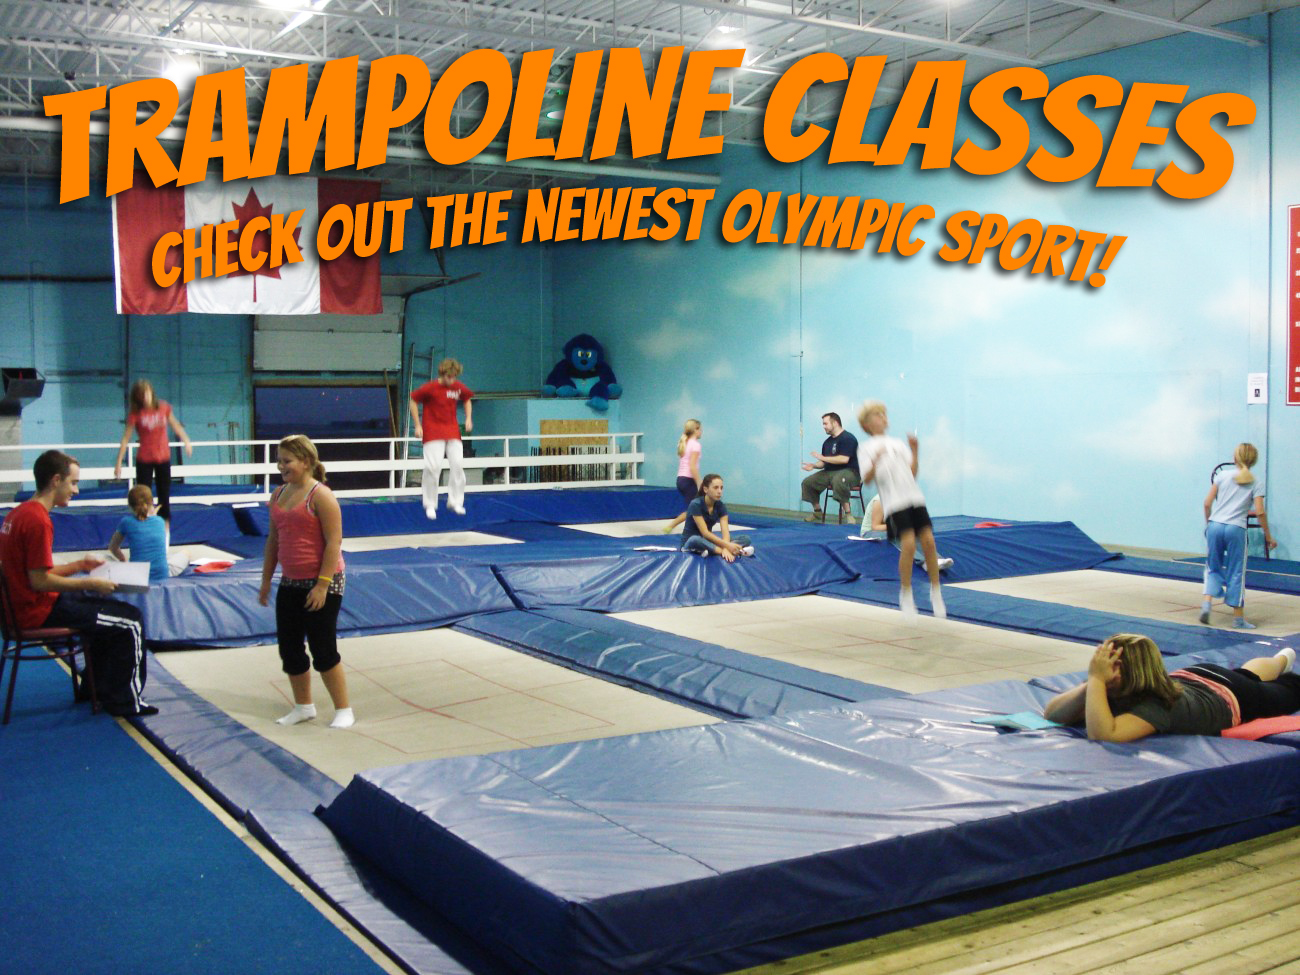 Airborne Gymnastics Trampoline Classes